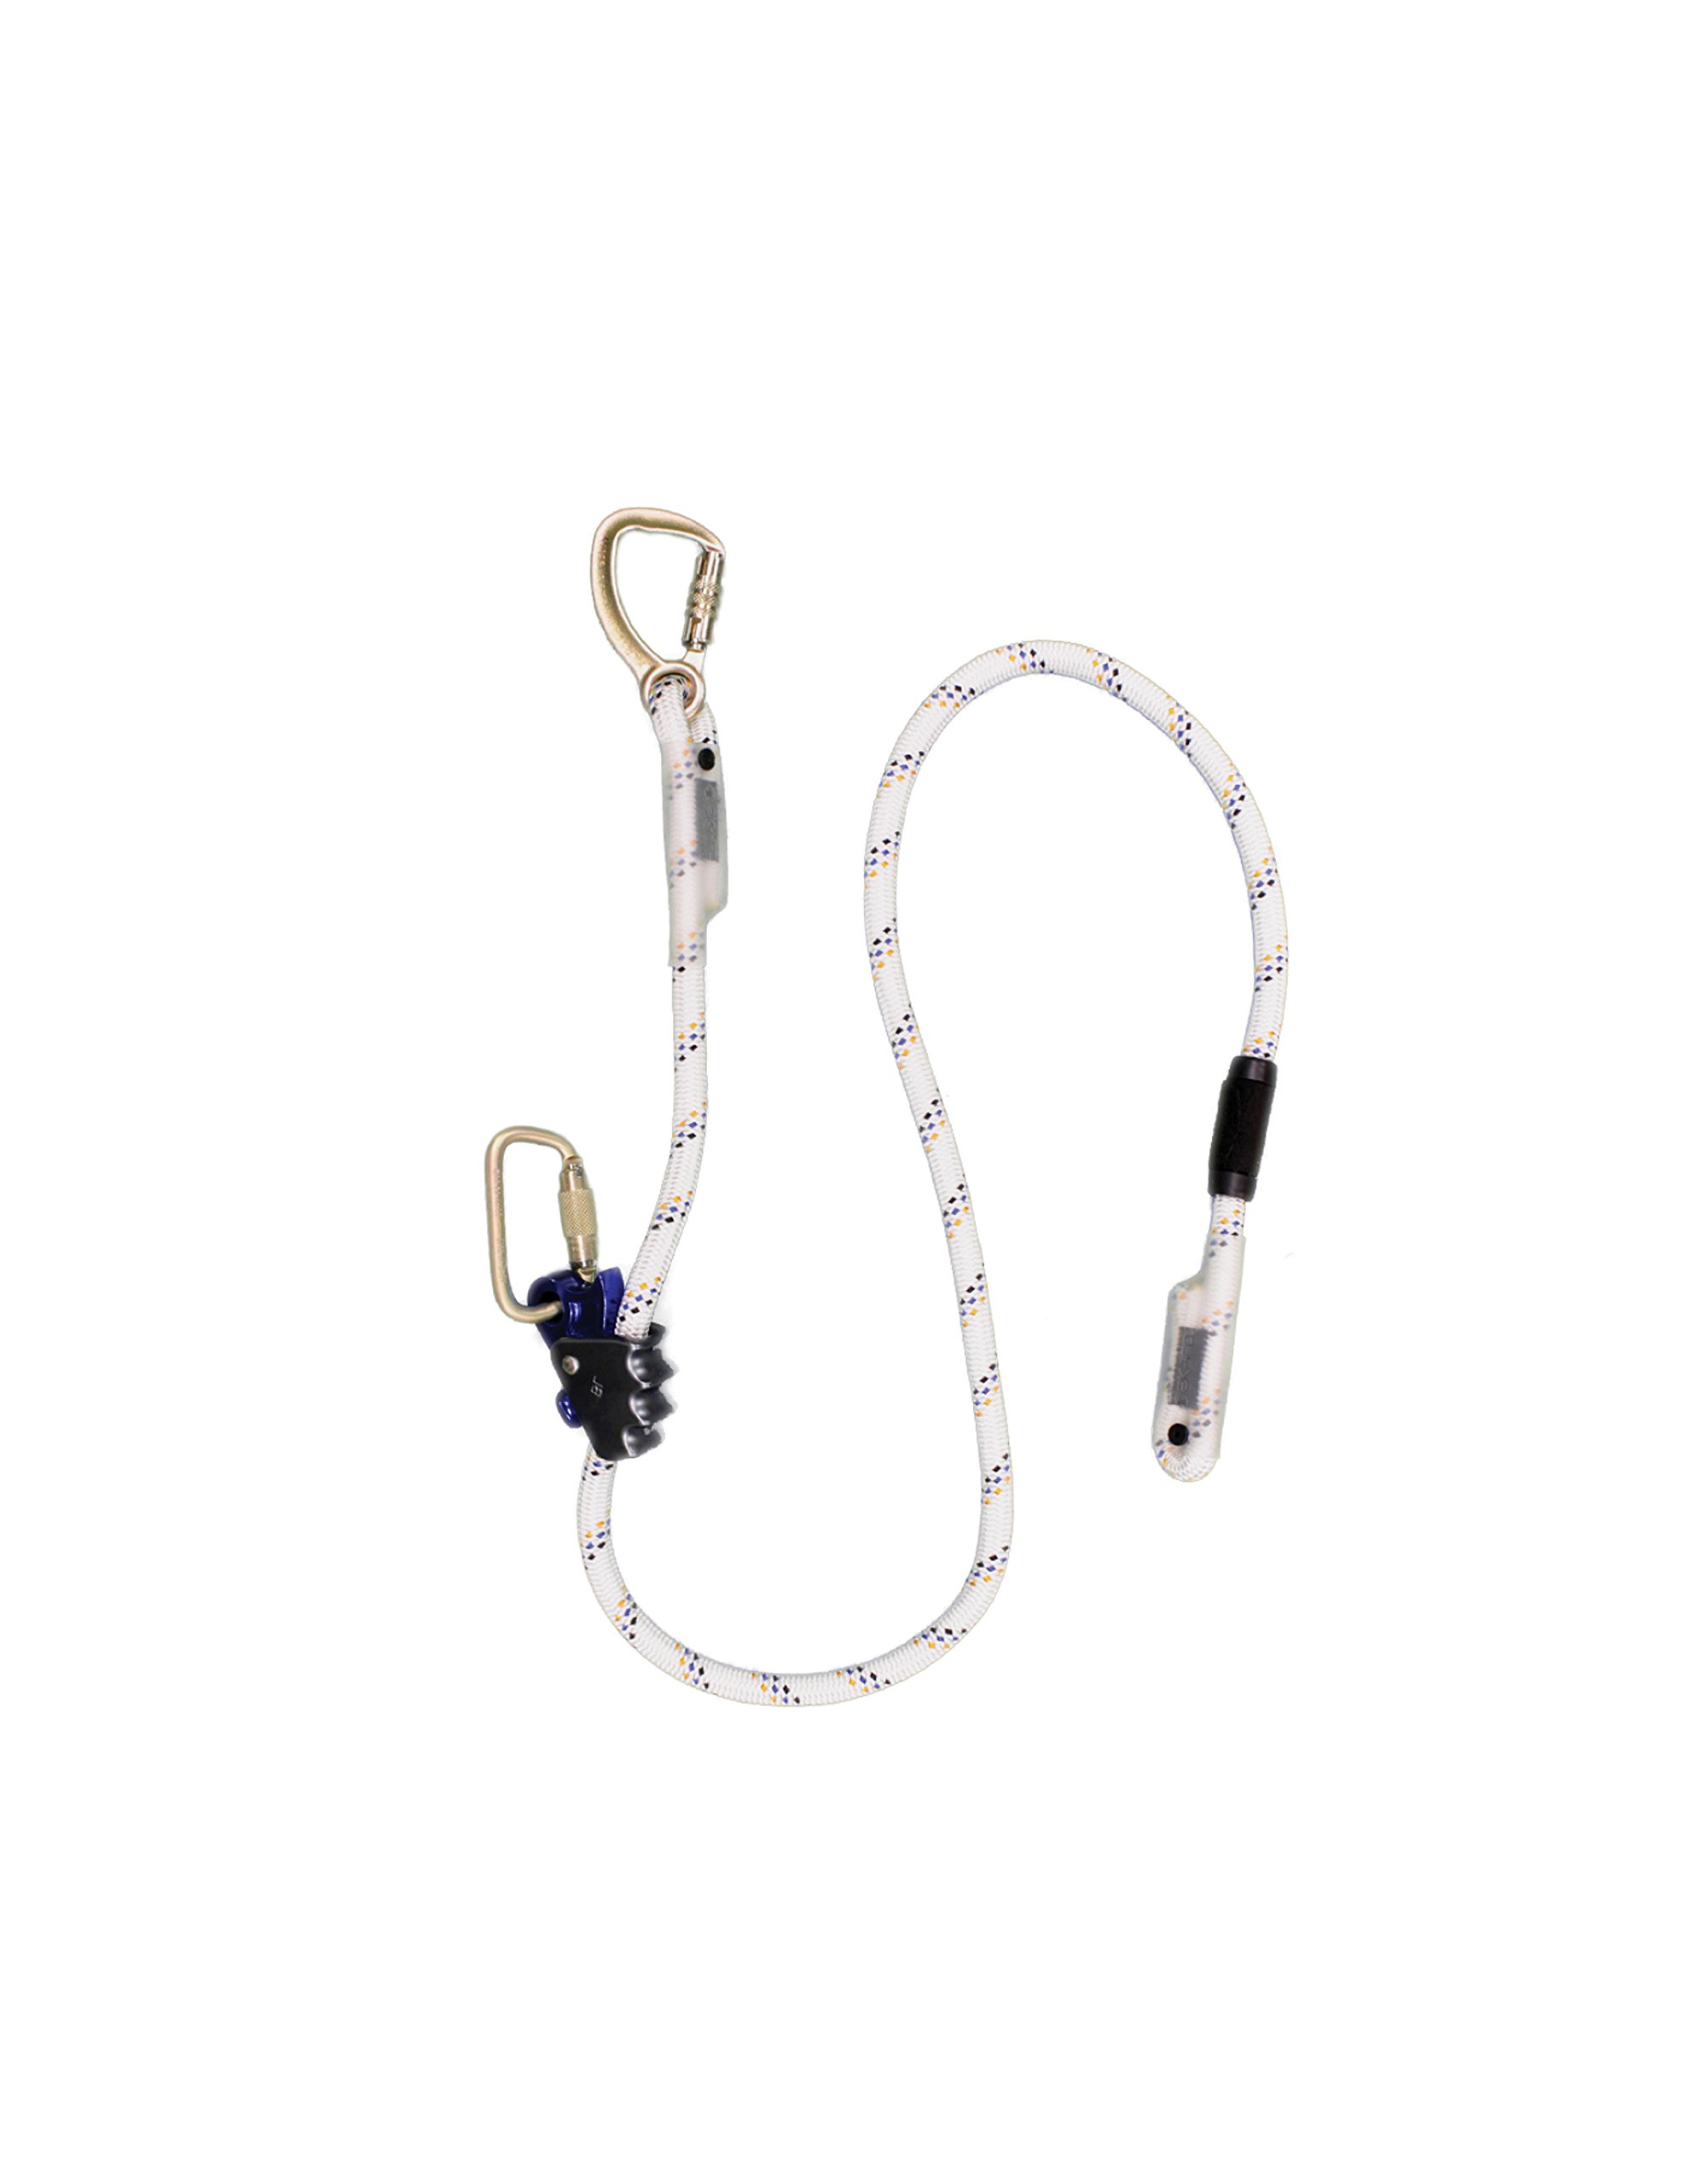 Elk River 34416 Quick-Adjustable Polyester Rope Positioning Lanyard with Carabiner and Zsnaphook, 3600 lbs Gate, 5/8'' Diameter x 6' Length